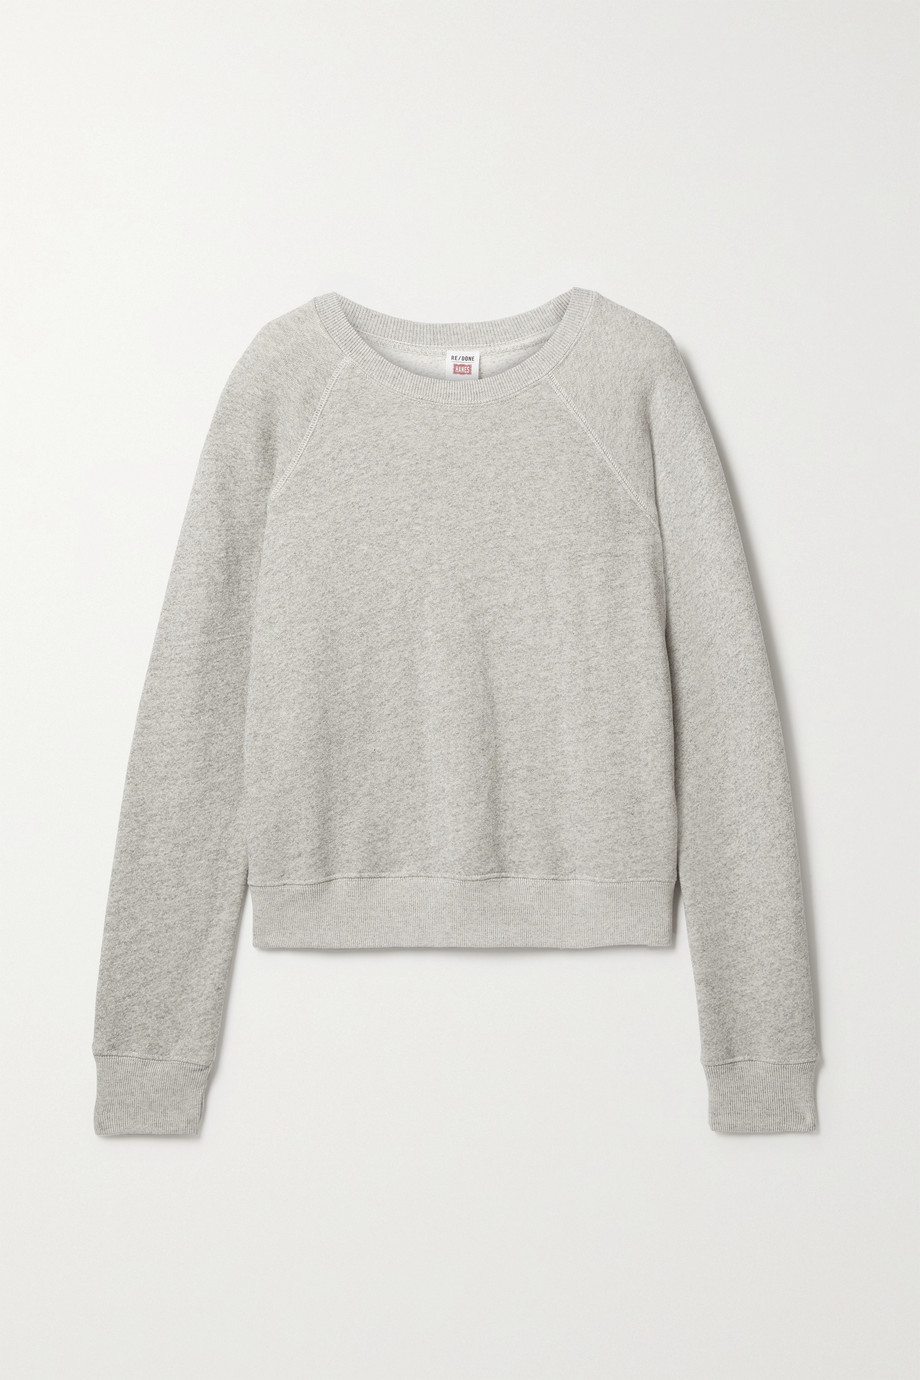 RE/DONE + Hanes cotton-jersey sweatshirt